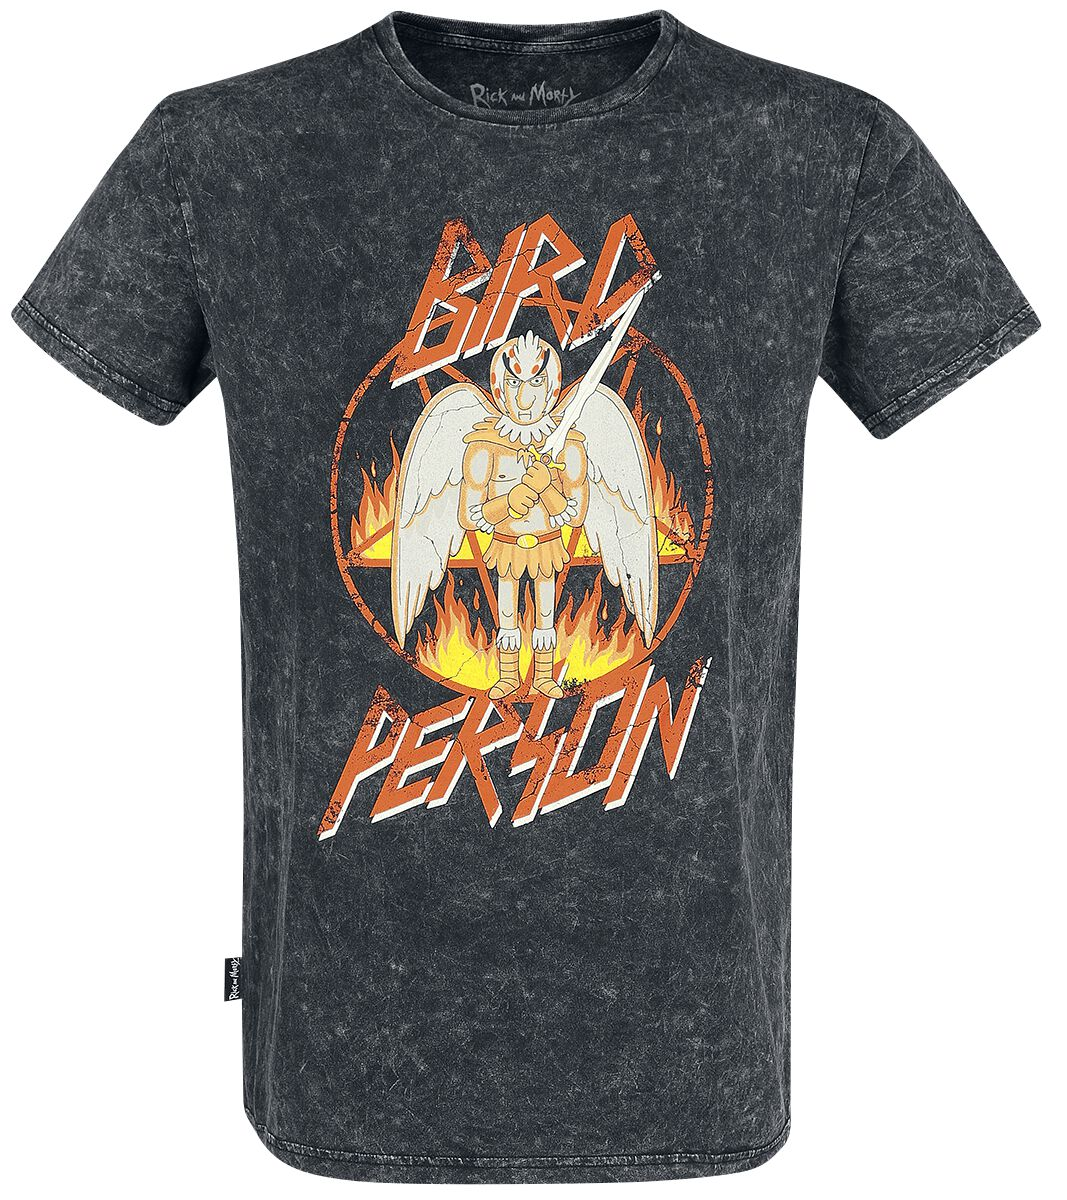 Image of   Rick And Morty Bird Person T-Shirt grå